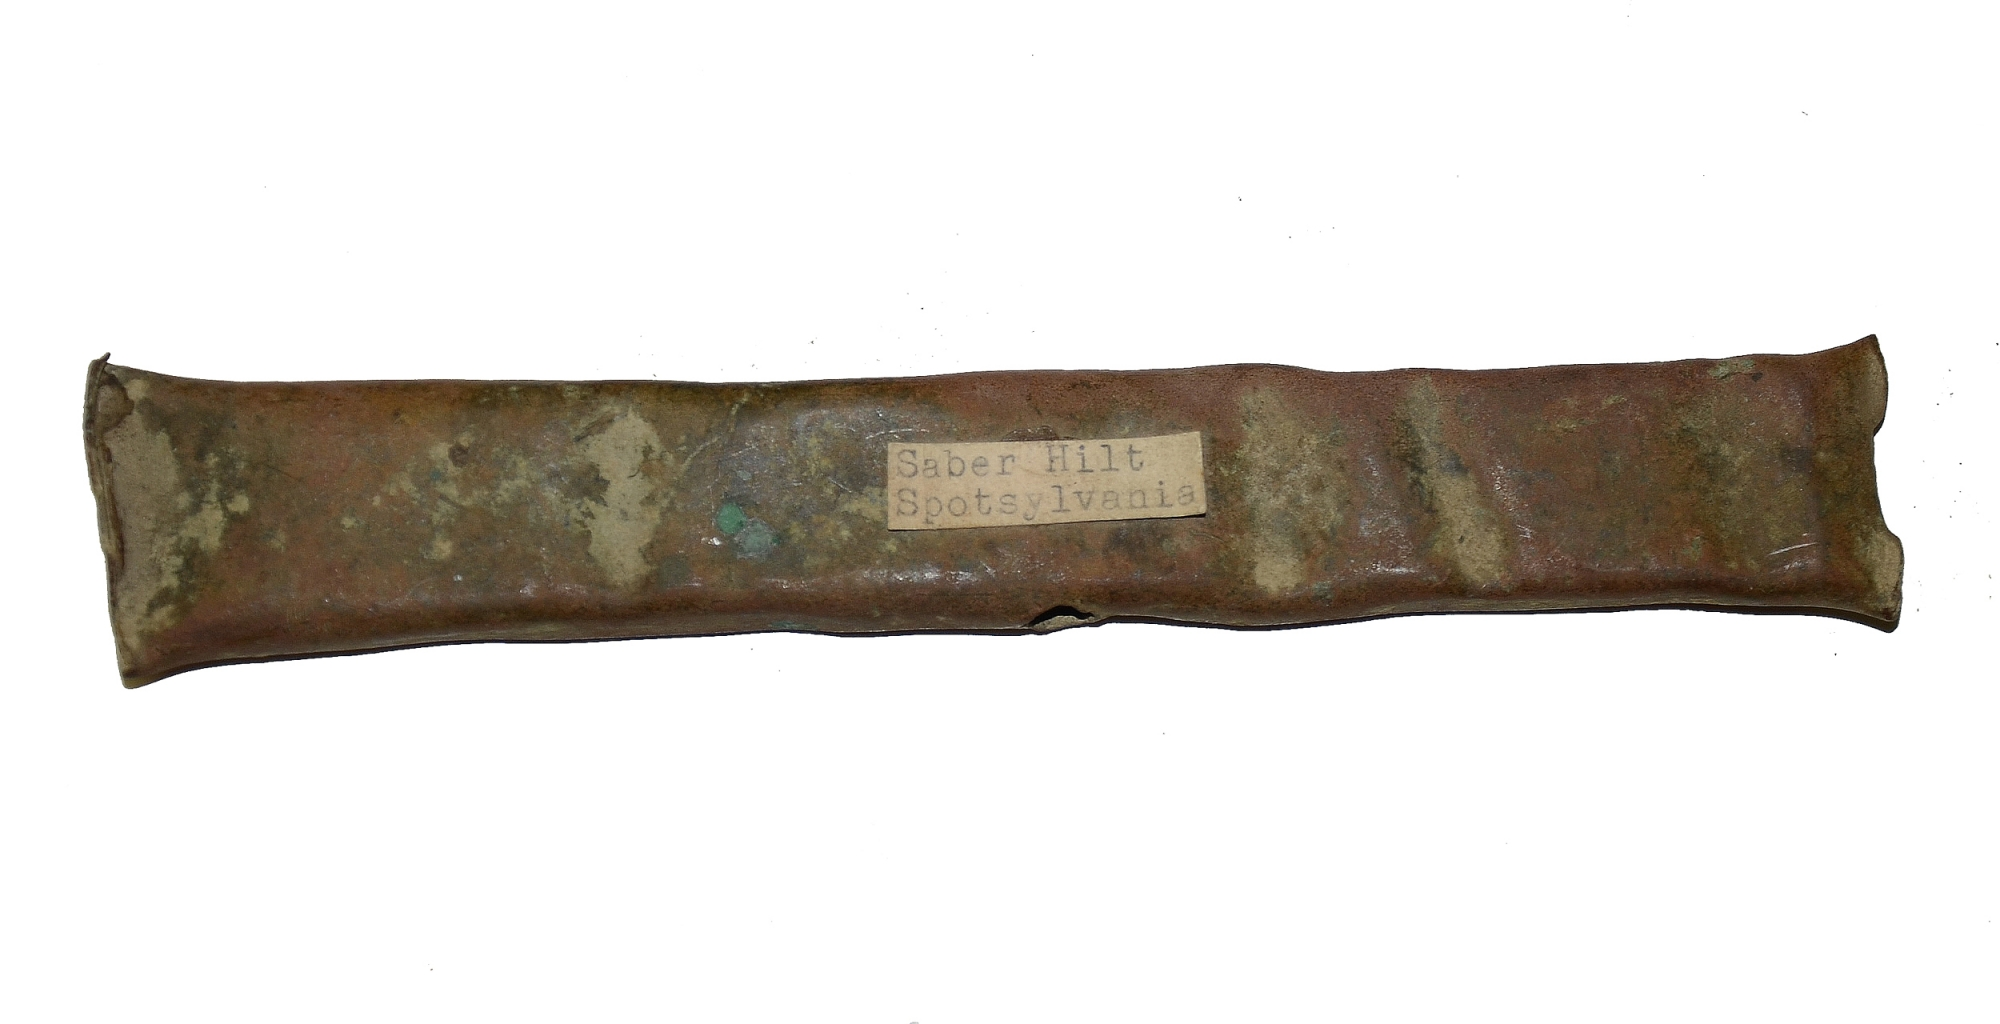 SECTION OF SWORD SCABBARD FROM SPOTSYLVANIA